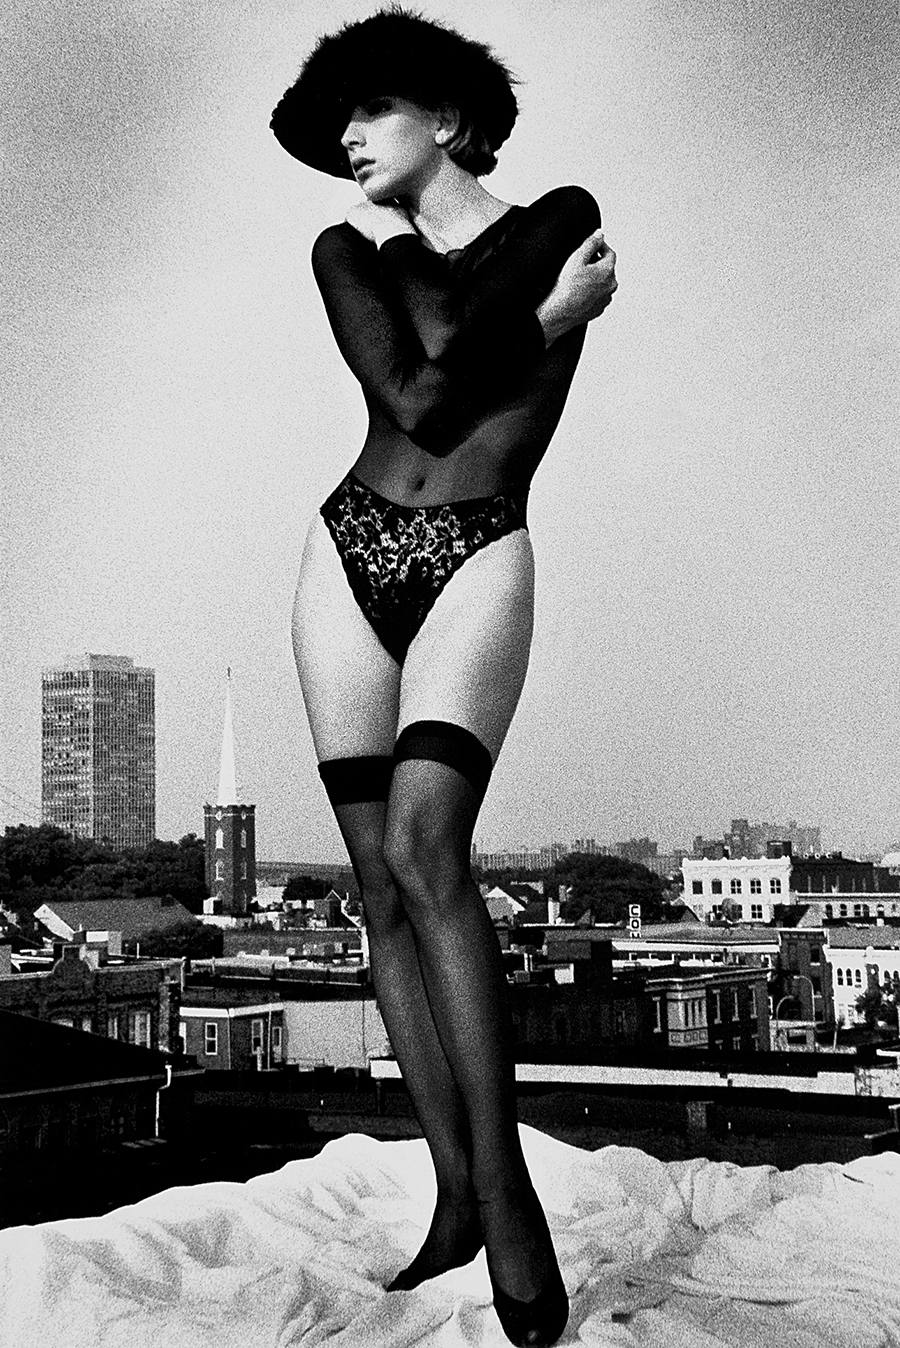 Tony_Ward_early_portfolio_classics_vintage_fashion_hat_lingerie_thigh_highs_rooftop